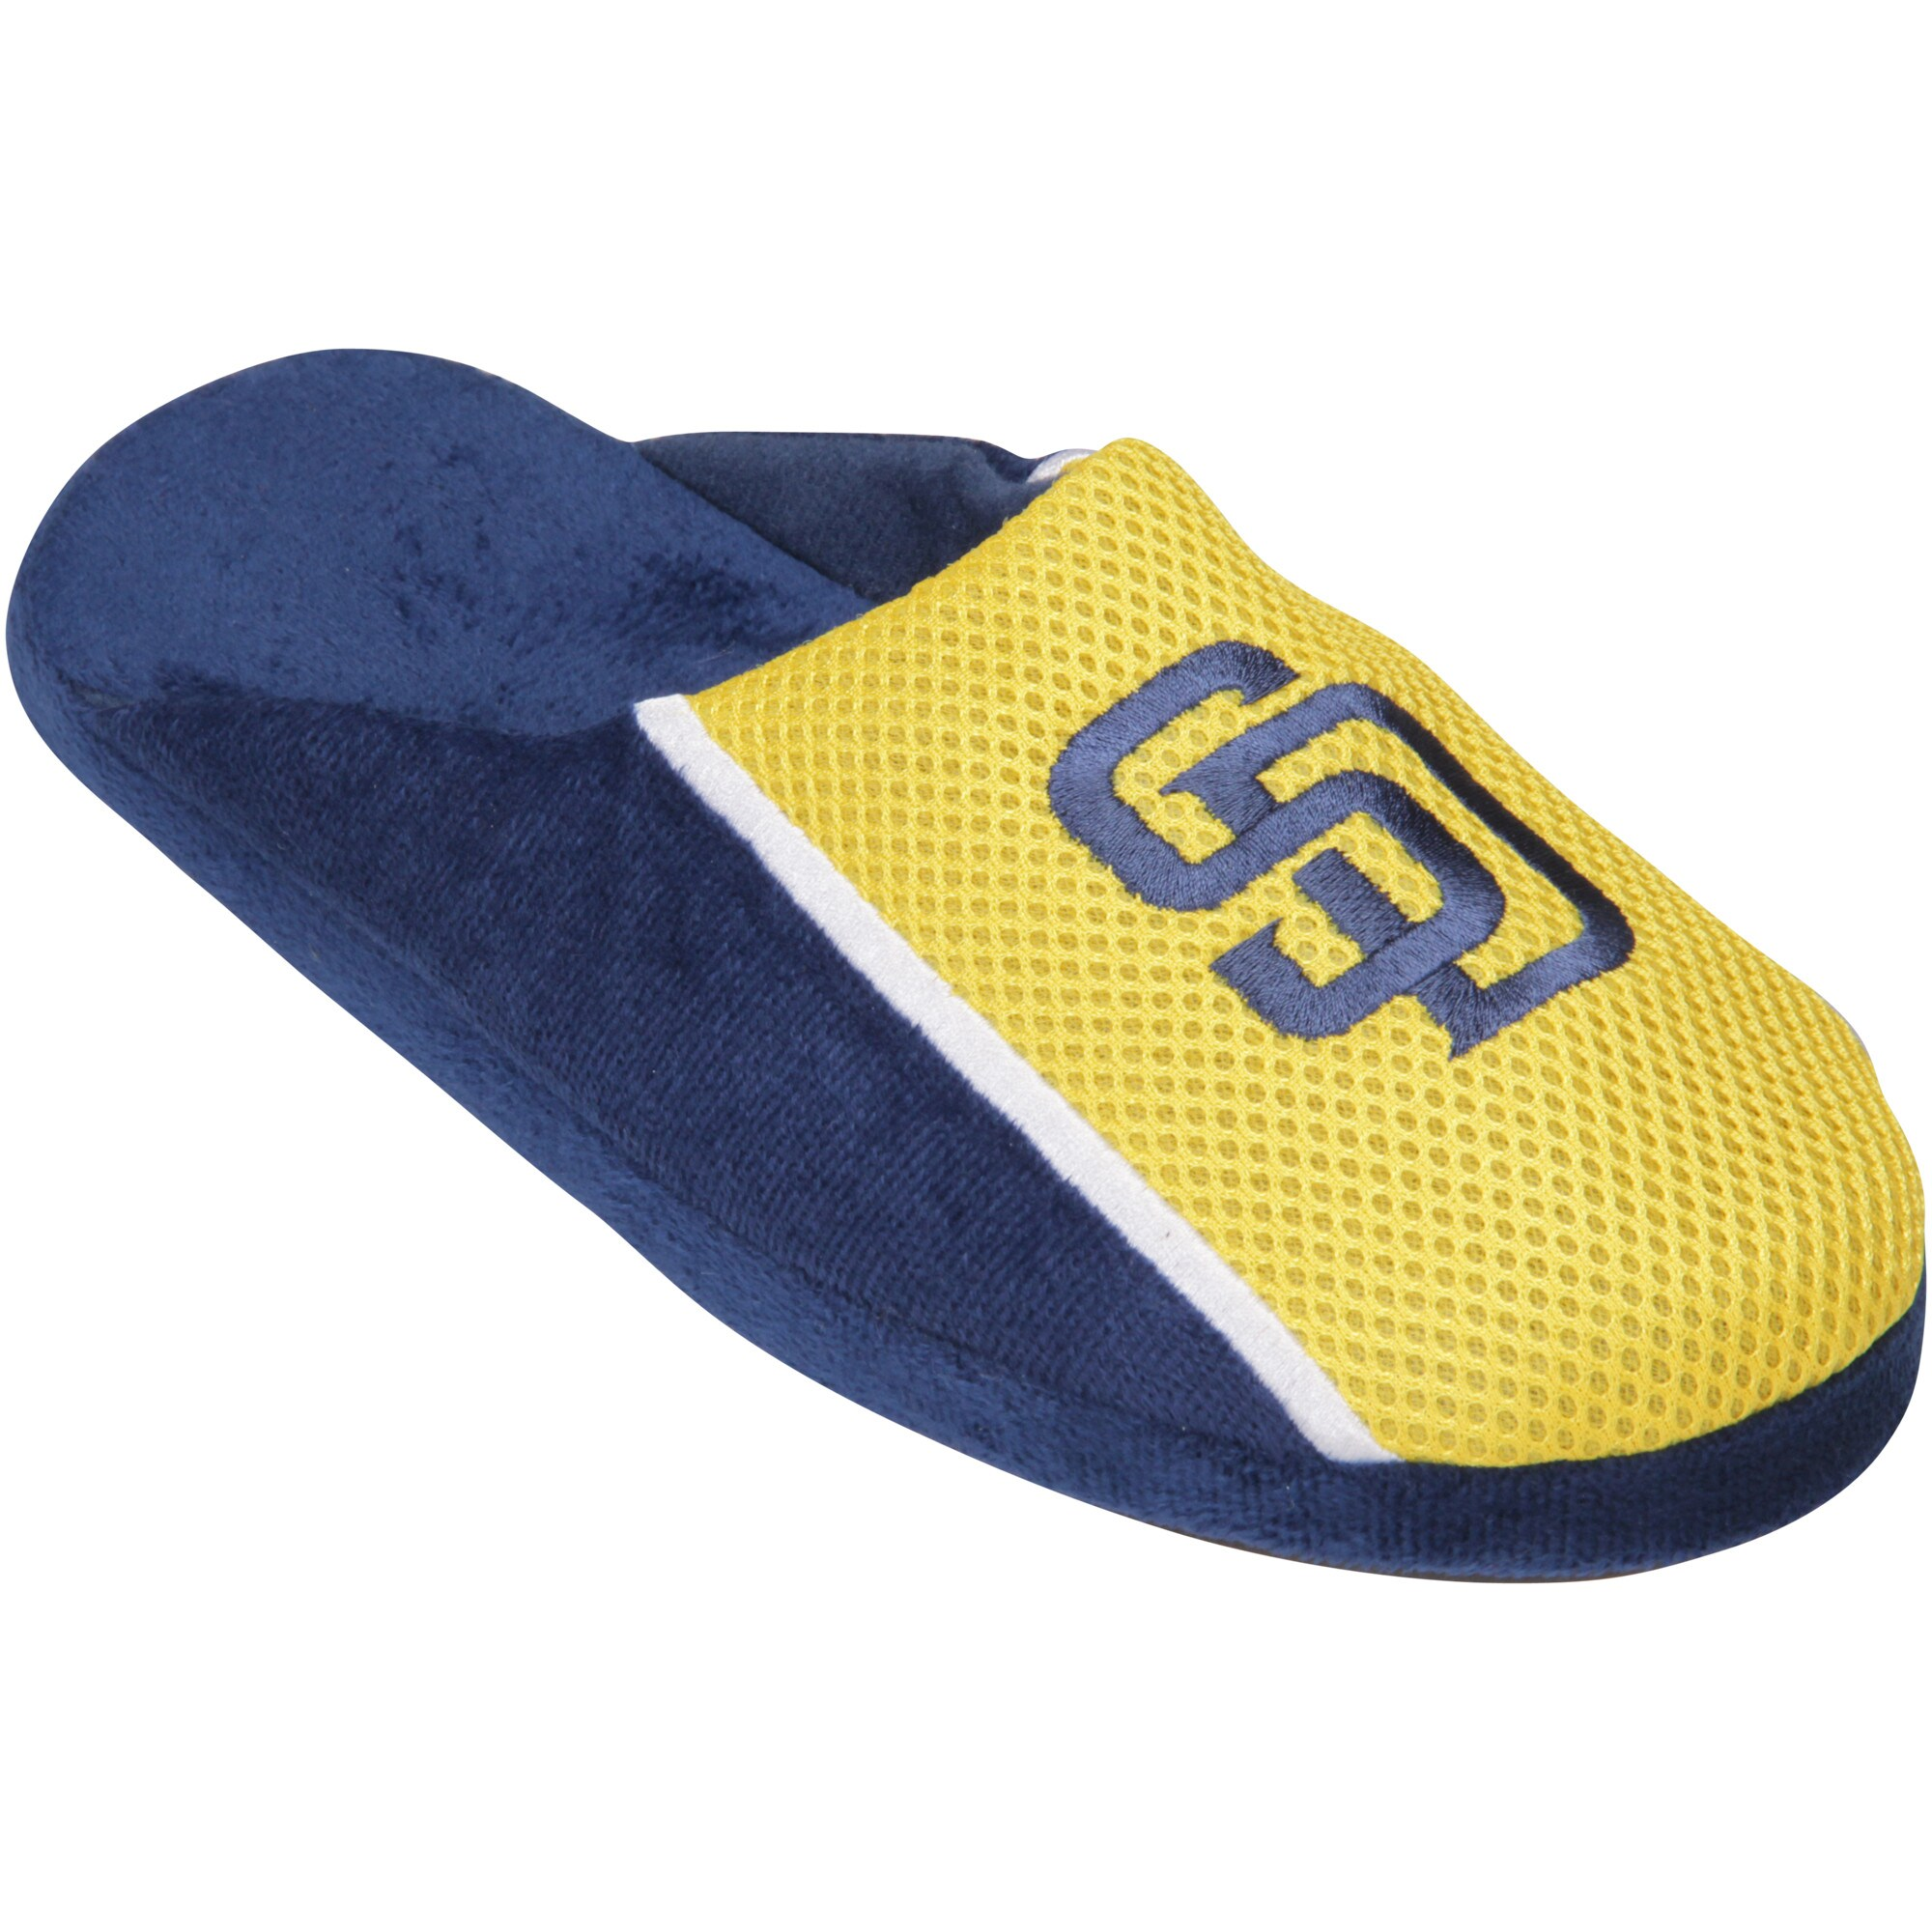 San Diego Padres Jersey Slide Slippers